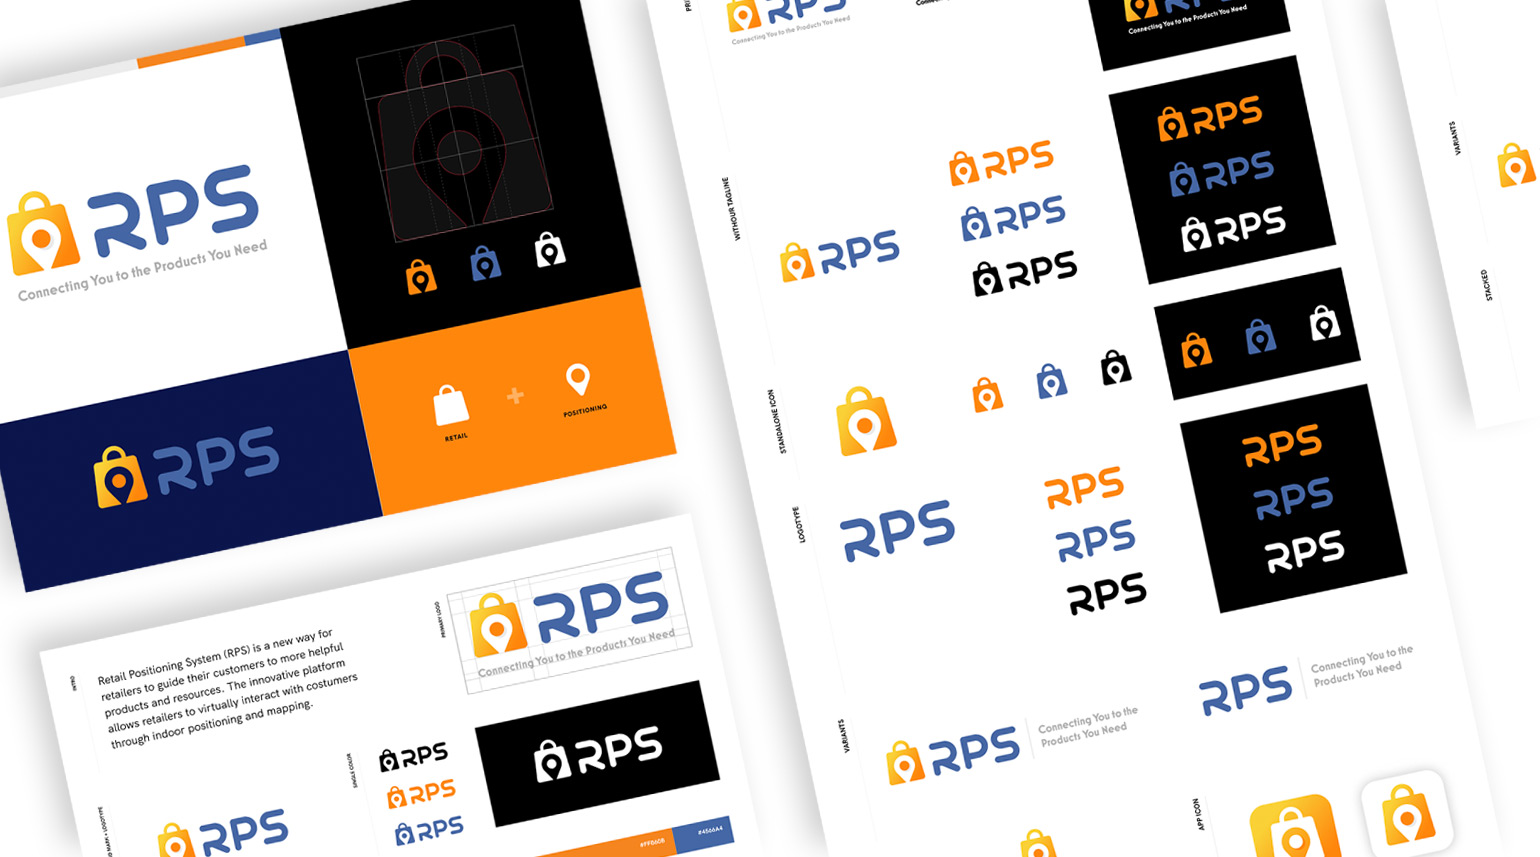 Various mockups from the full brand system and brand guidelines that were developed for the RPS brand.